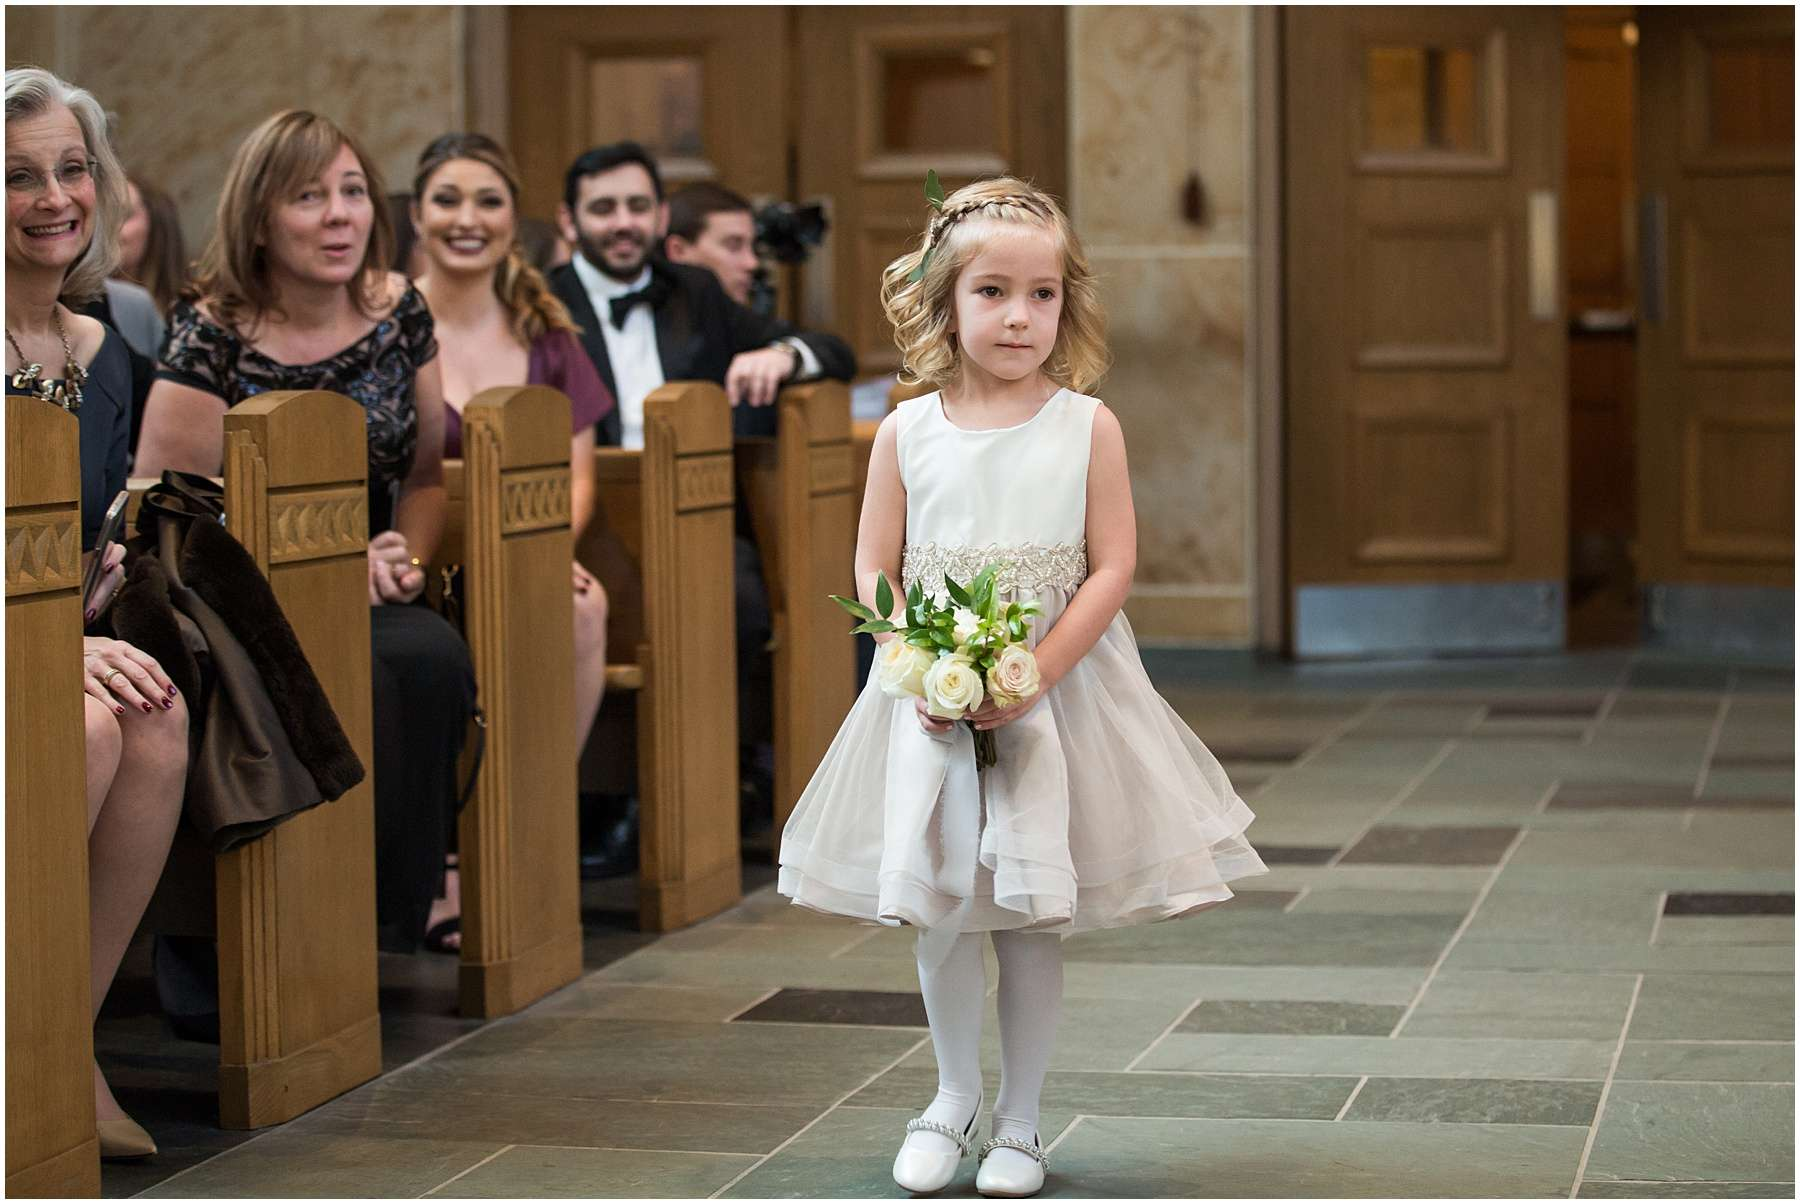 Wedding at the Ohio Statehouse | Columbus Ohio Weddings 72